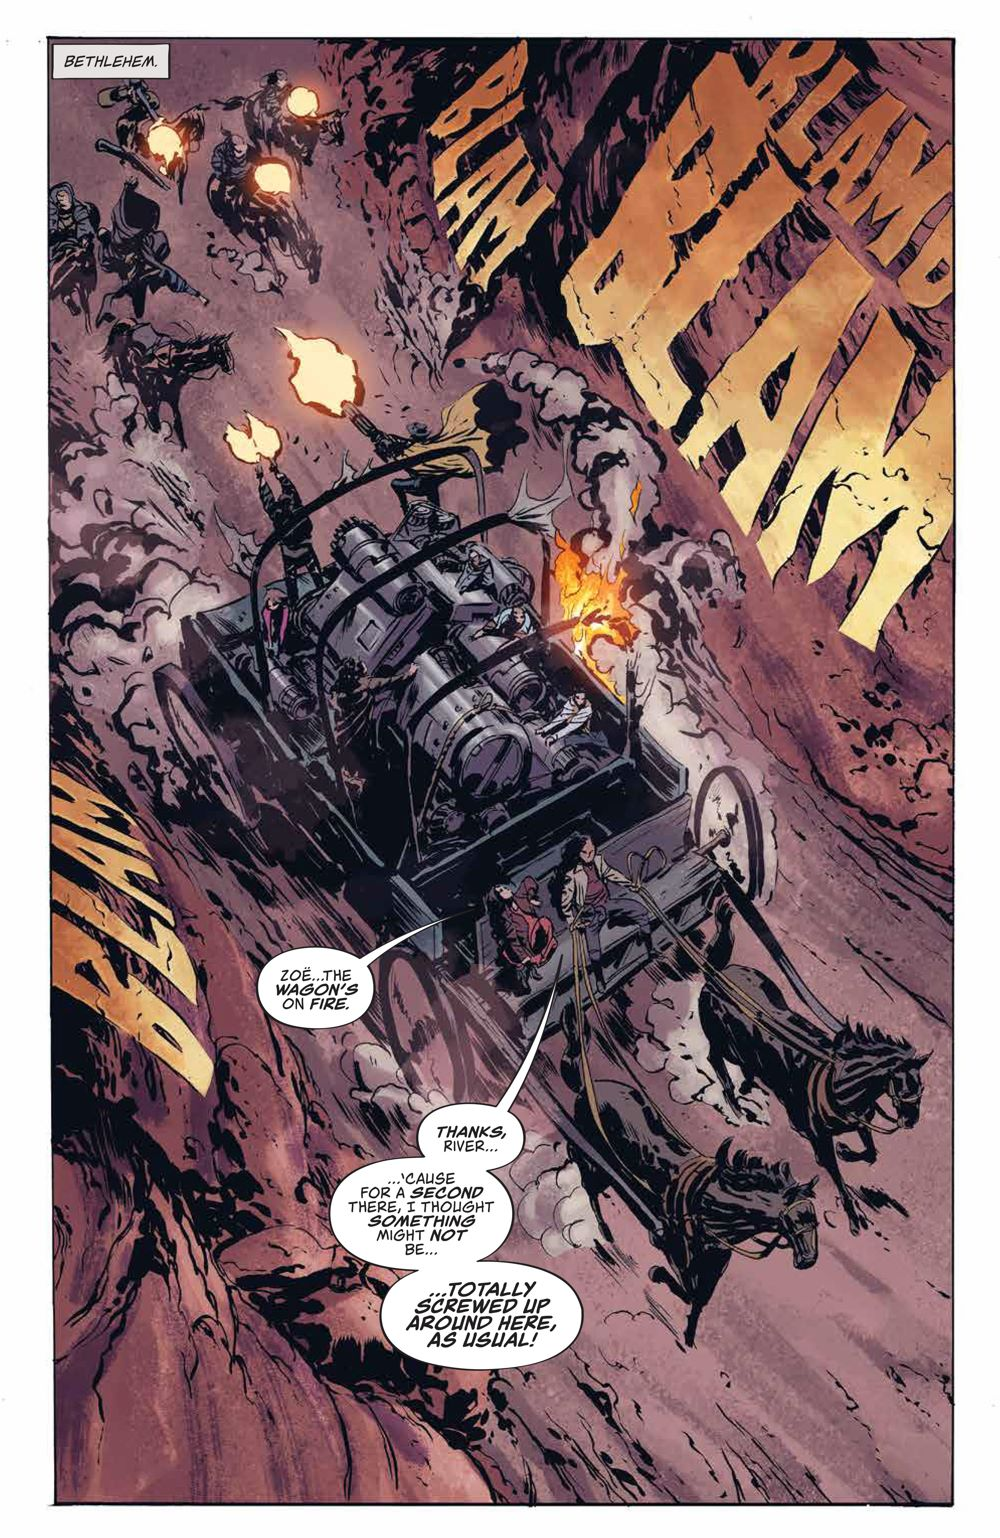 Firefly_UnificationWar_v2_SC_PRESS_9 ComicList Previews: FIREFLY THE UNIFICATION WAR VOLUME 2 TP